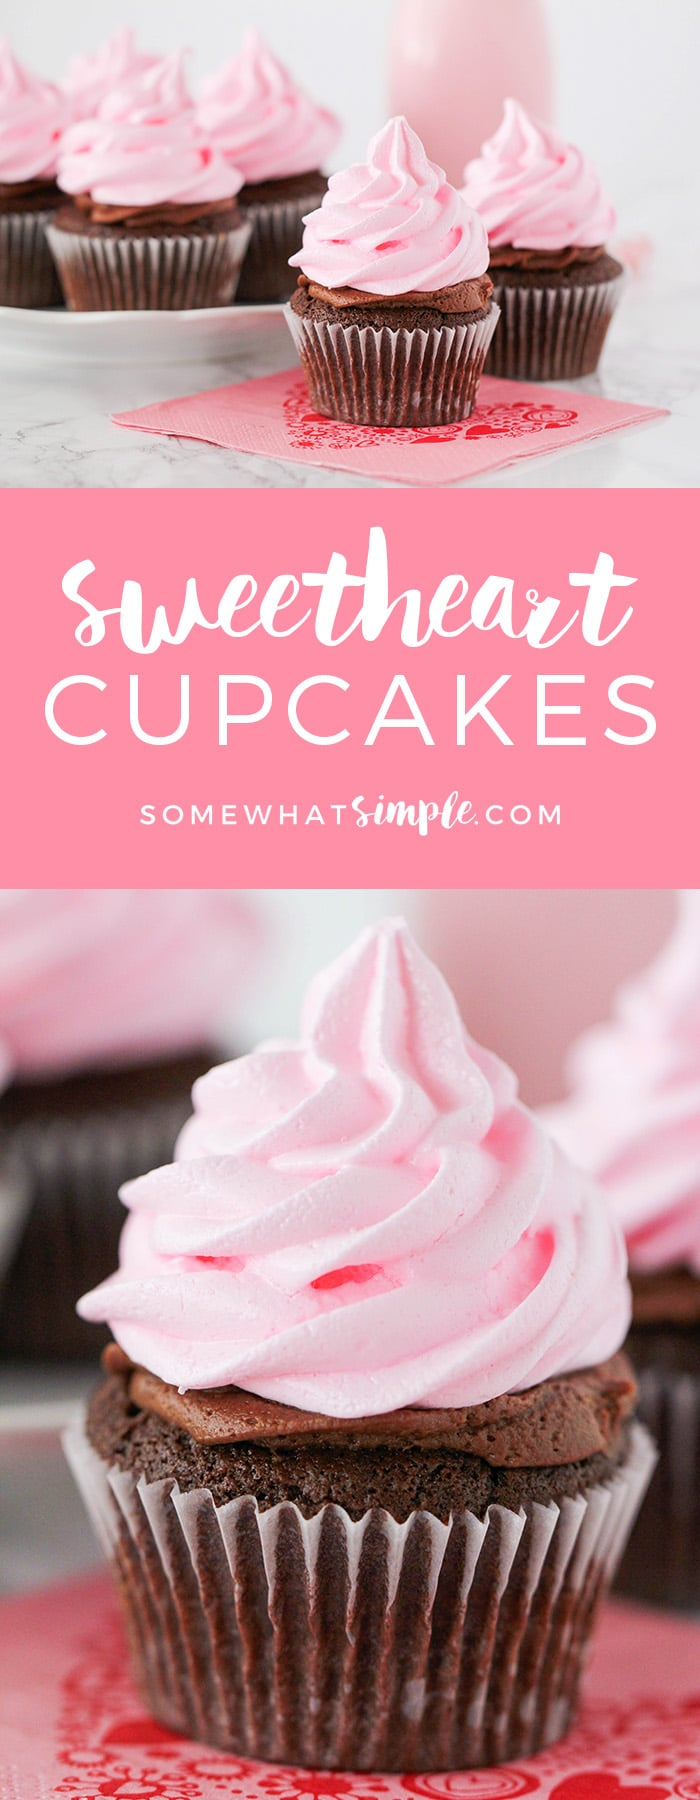 These delicious little sweetheart cupcakes start with one of my new favorite treats - pink meringue cookies.  They're super easy to make and are fun way to top off your cupcakes.